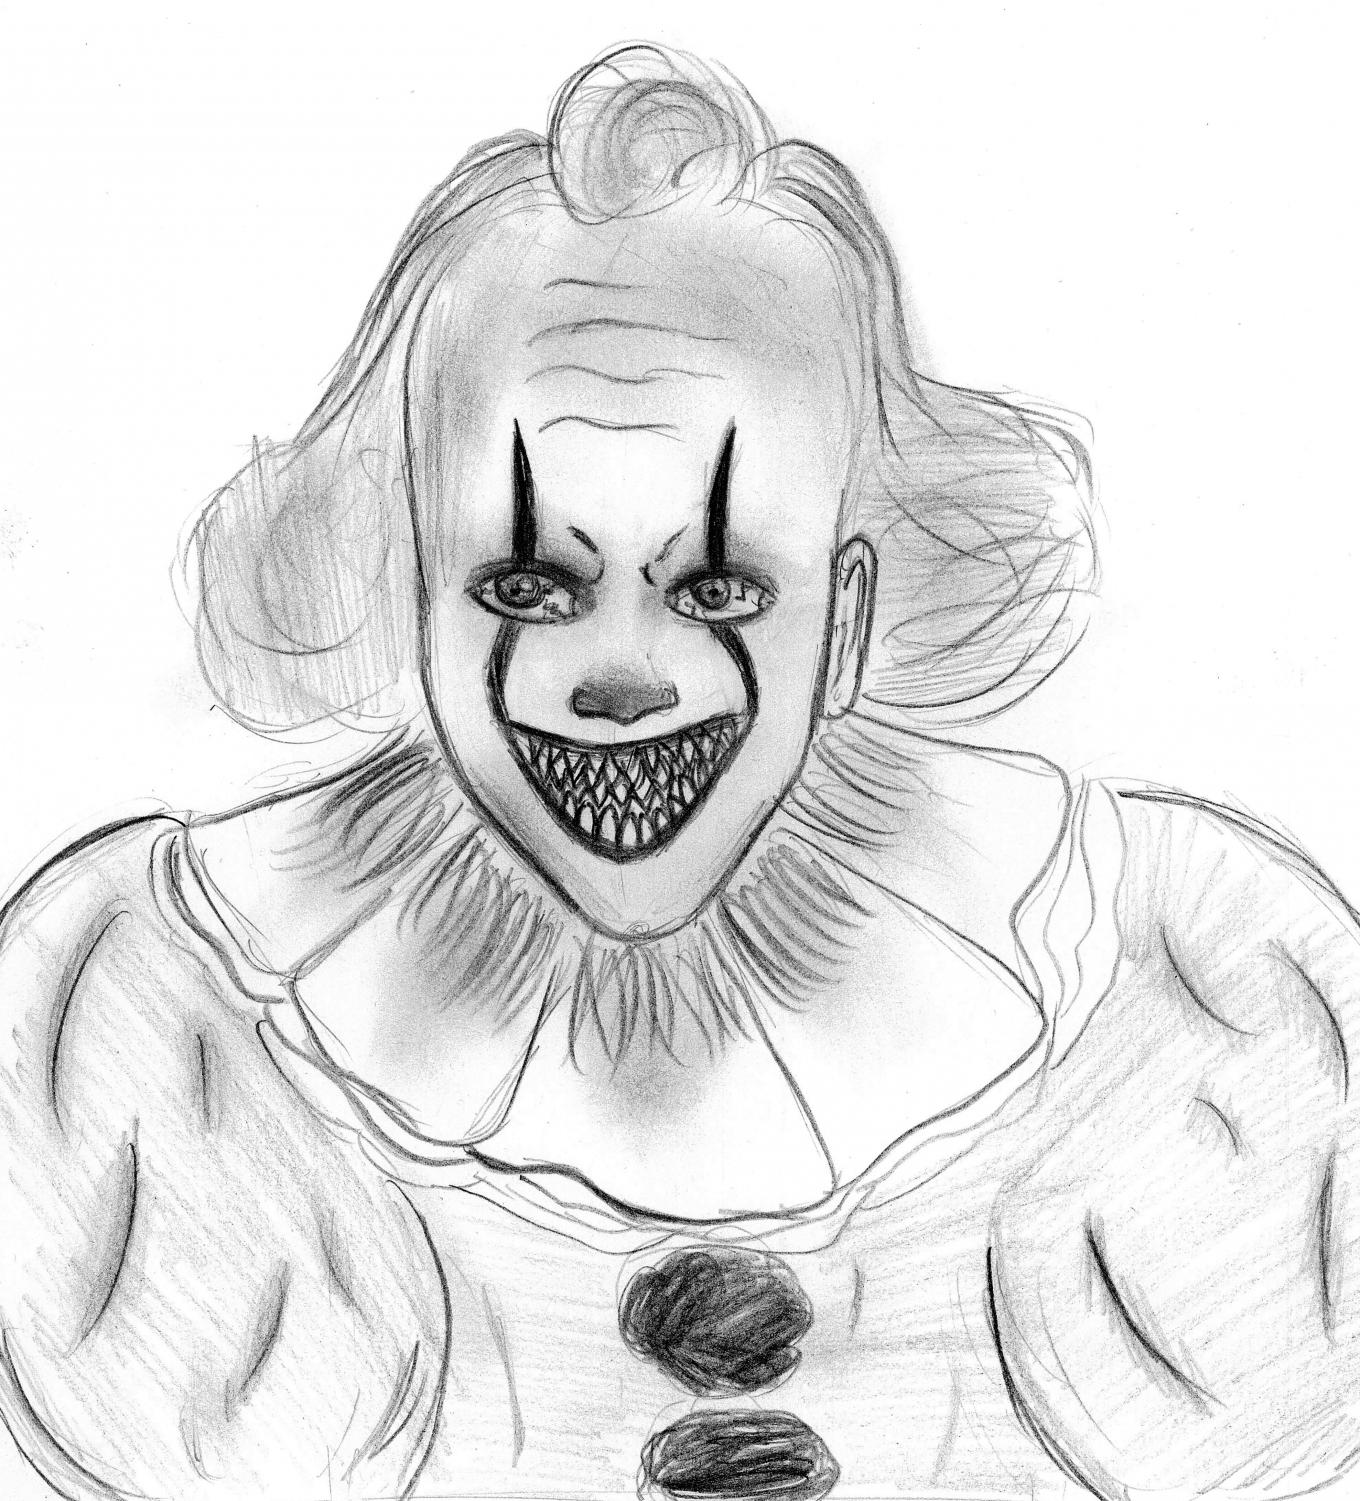 Pennywise from